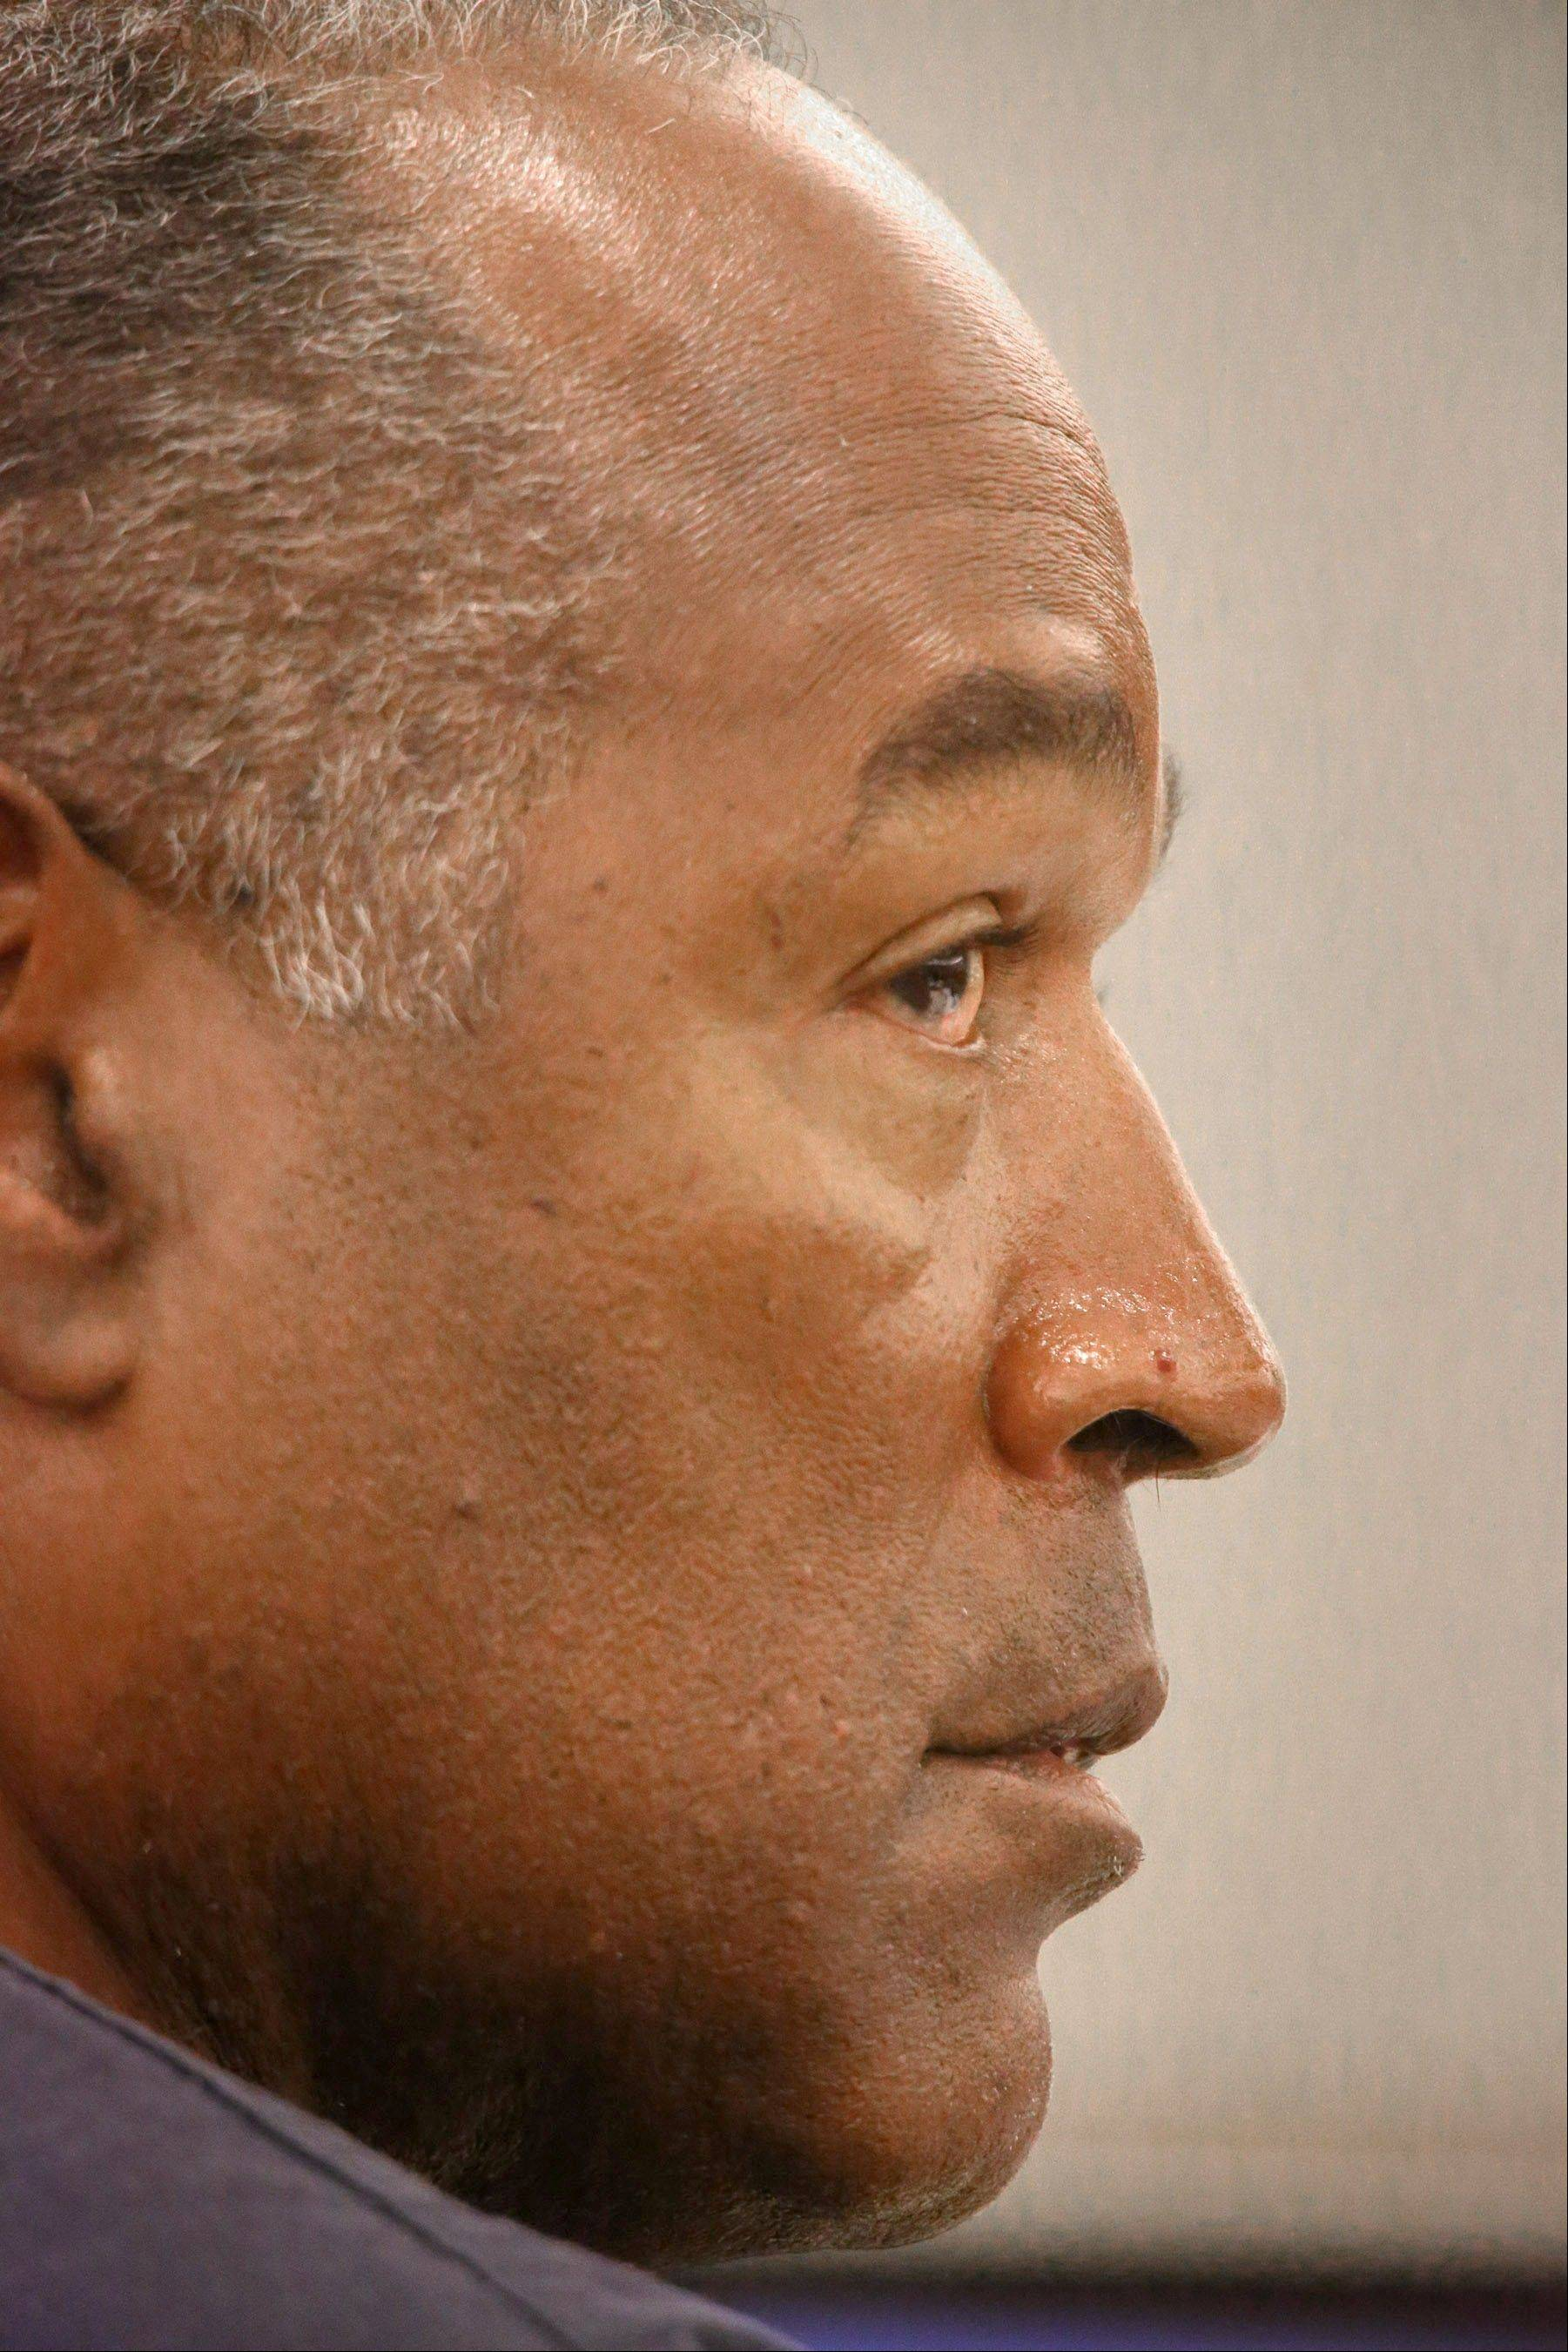 O.J. Simpson, who is currently serving a nine-to-33-year sentence in state prison as a result of his October 2008 conviction for armed robbery and kidnapping charges, is using a writ of habeas corpus, to seek a new trial, claiming he had such bad representation that his conviction should be reversed.